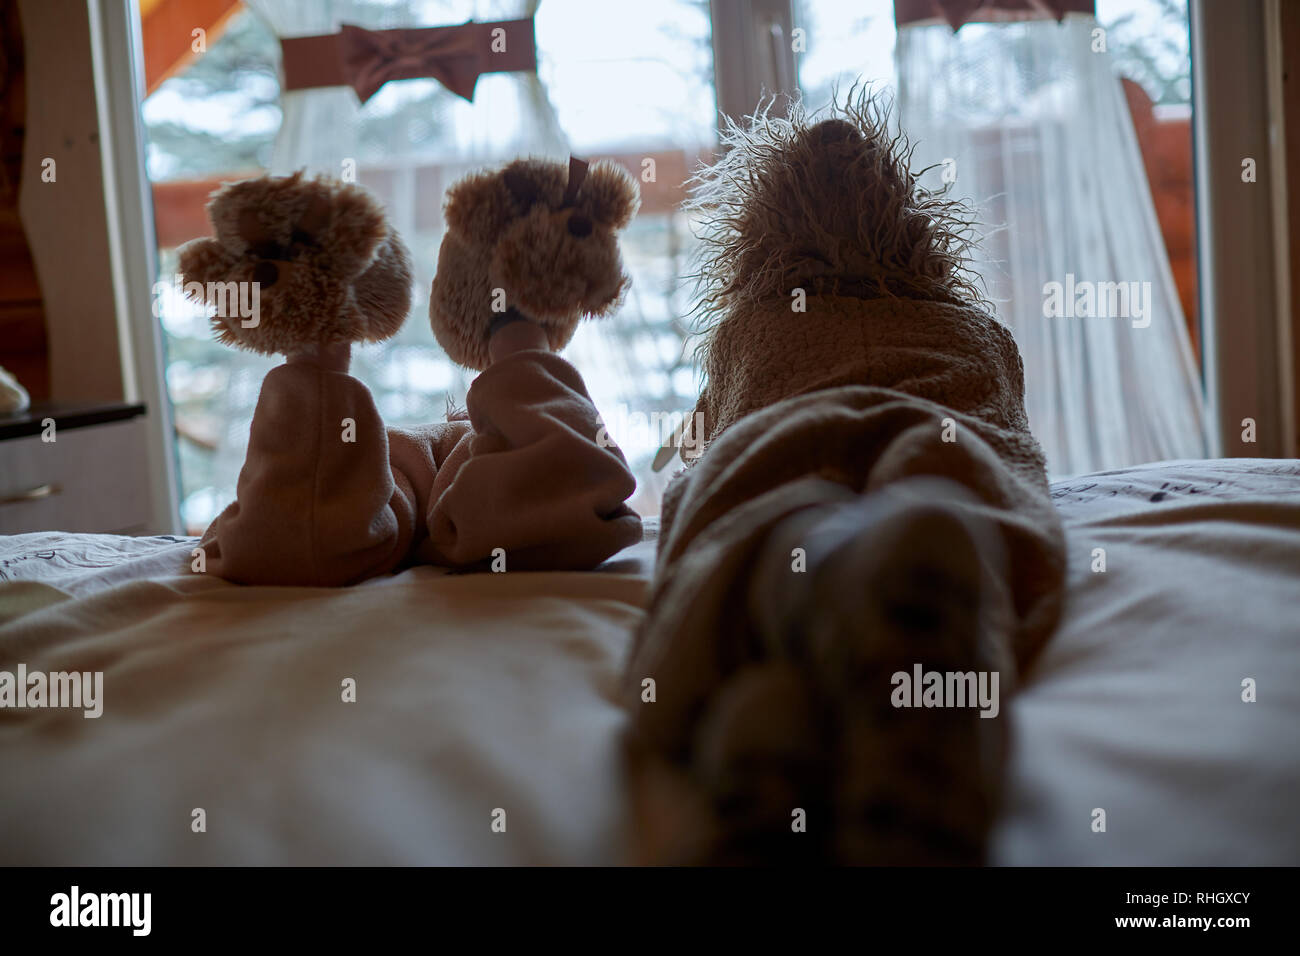 silhouette of brother and sister siblings looking outside window - Stock Image